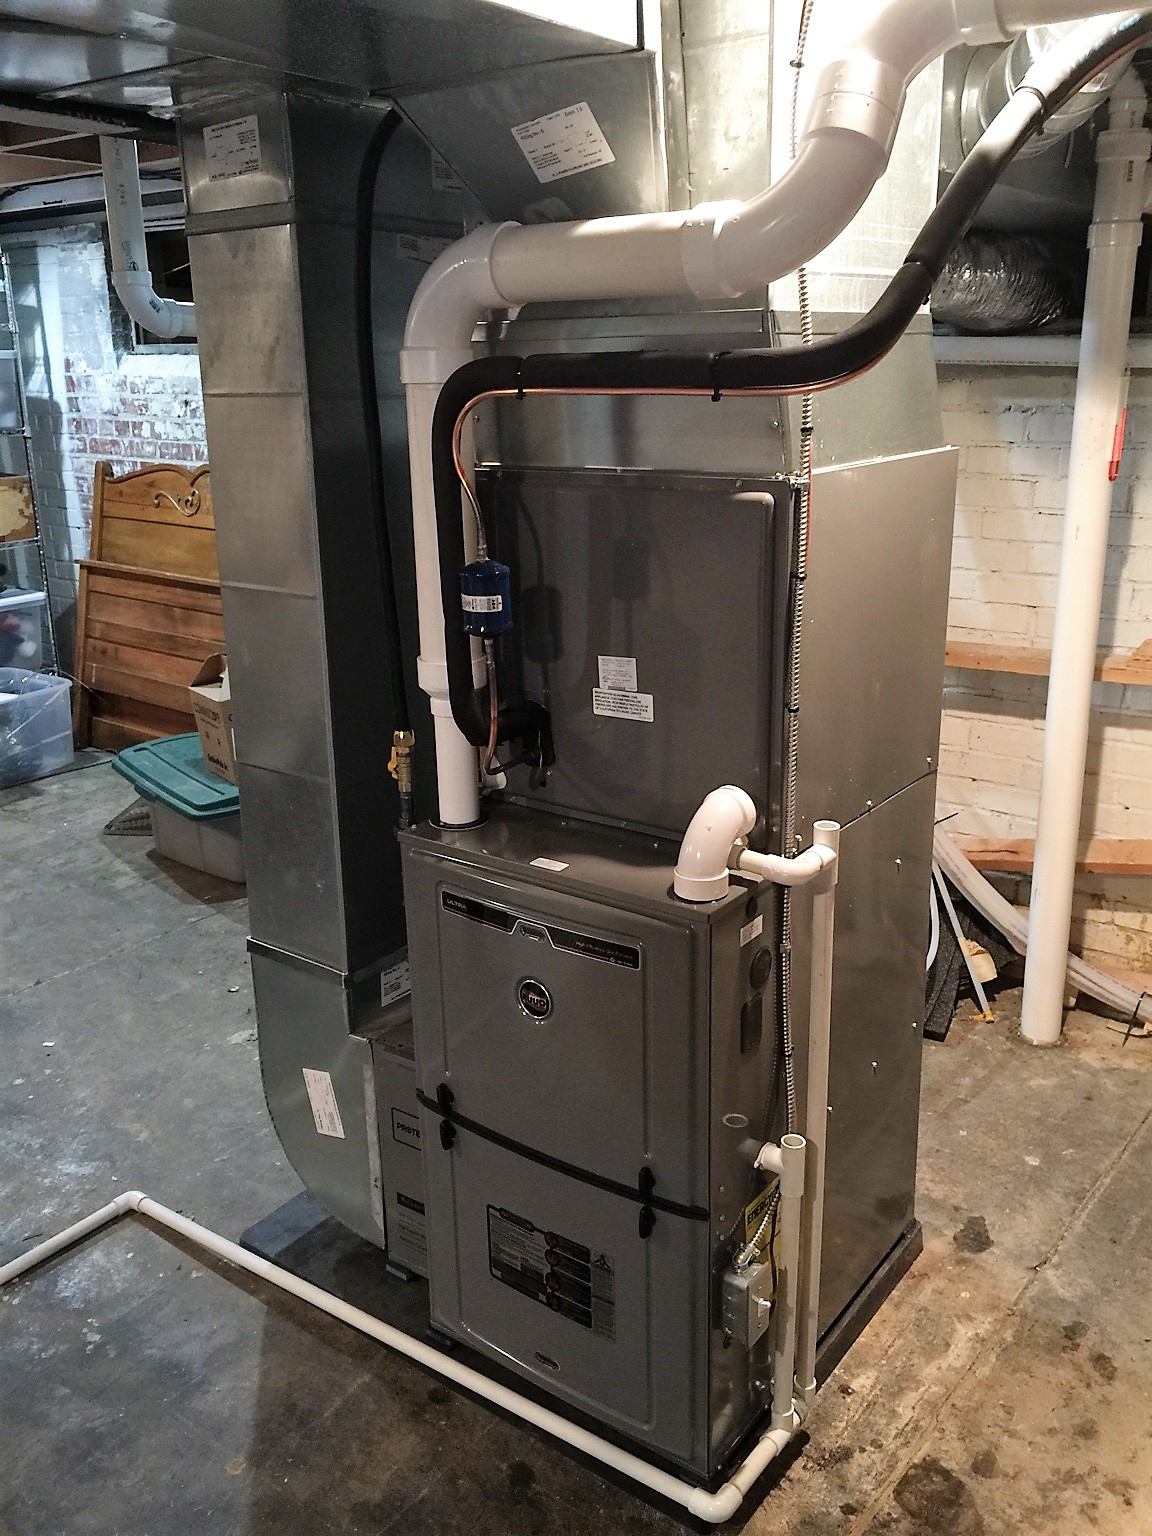 #866745 How To Measure And Make Transitions Between New Furnace  Recommended 2427 Duct Installation Guide pics with 1152x1536 px on helpvideos.info - Air Conditioners, Air Coolers and more